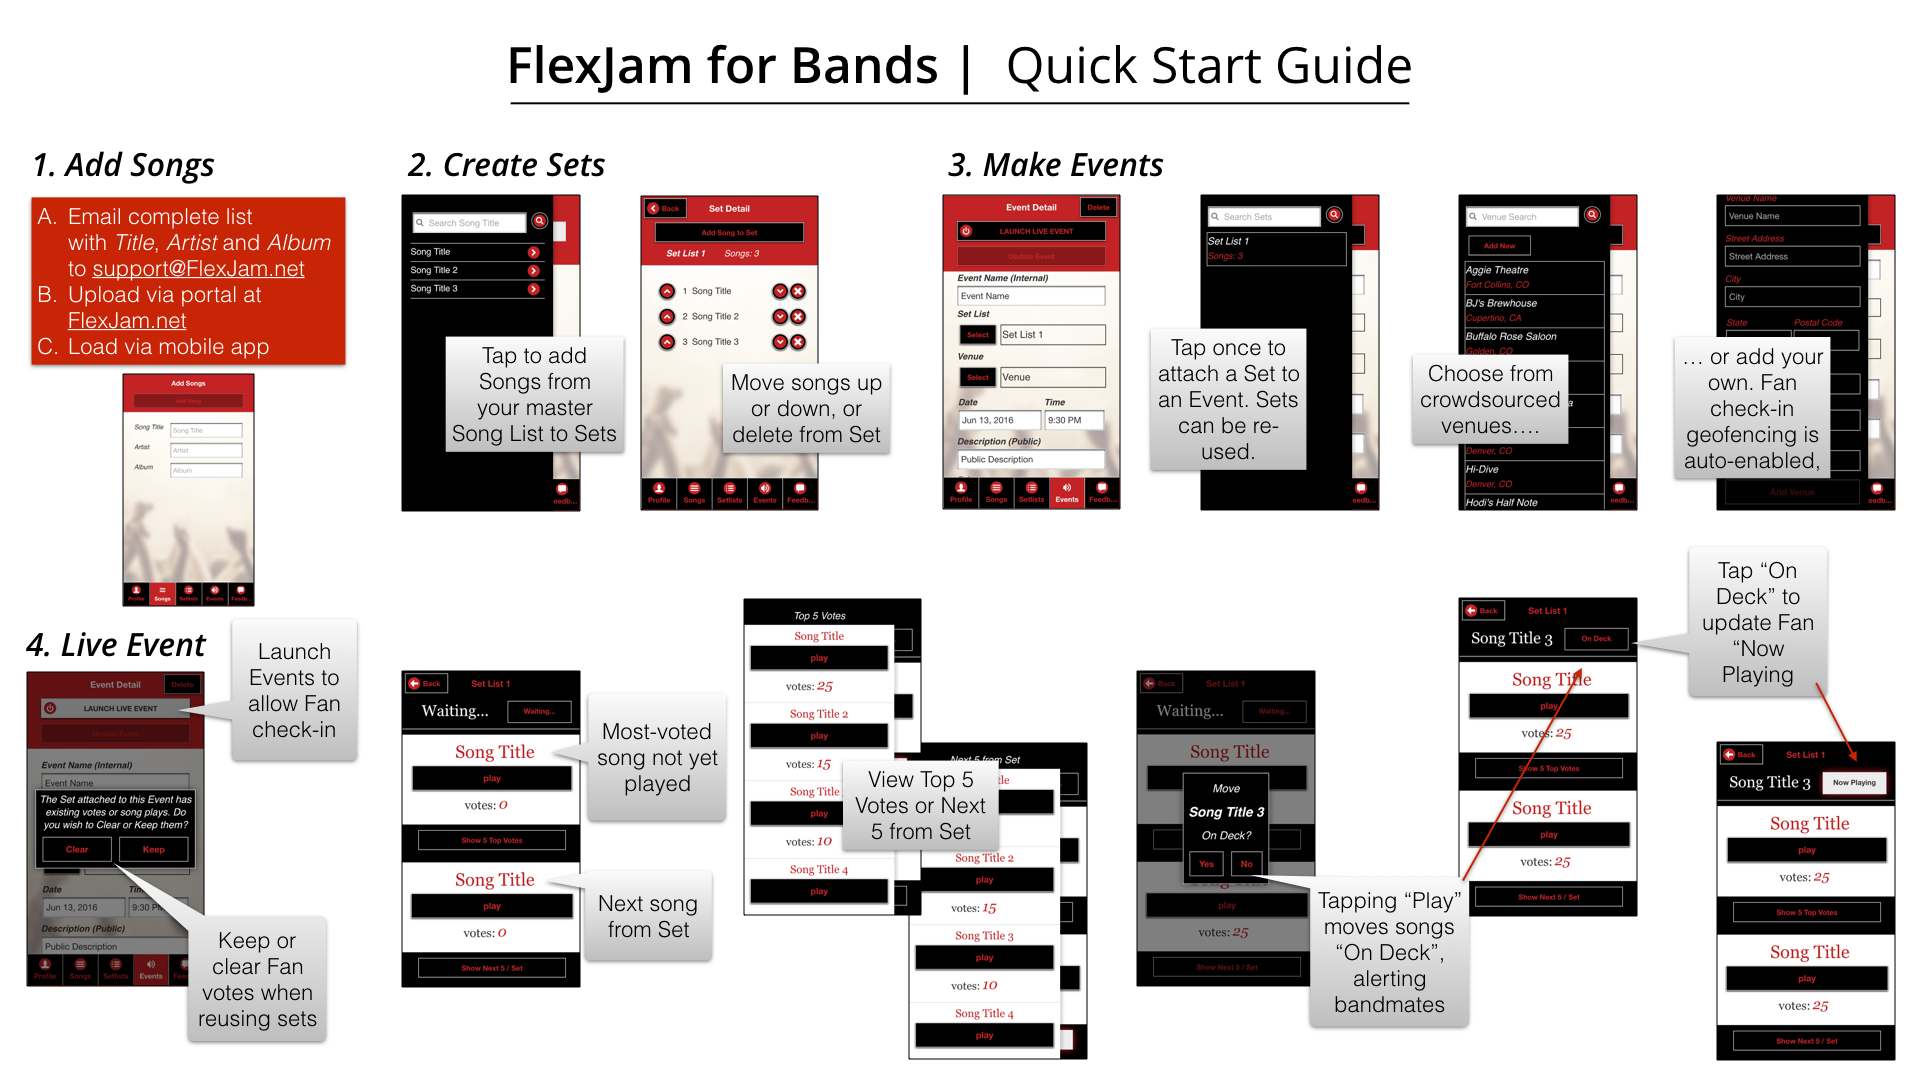 Getting started quick guide for FlexJam for Bands